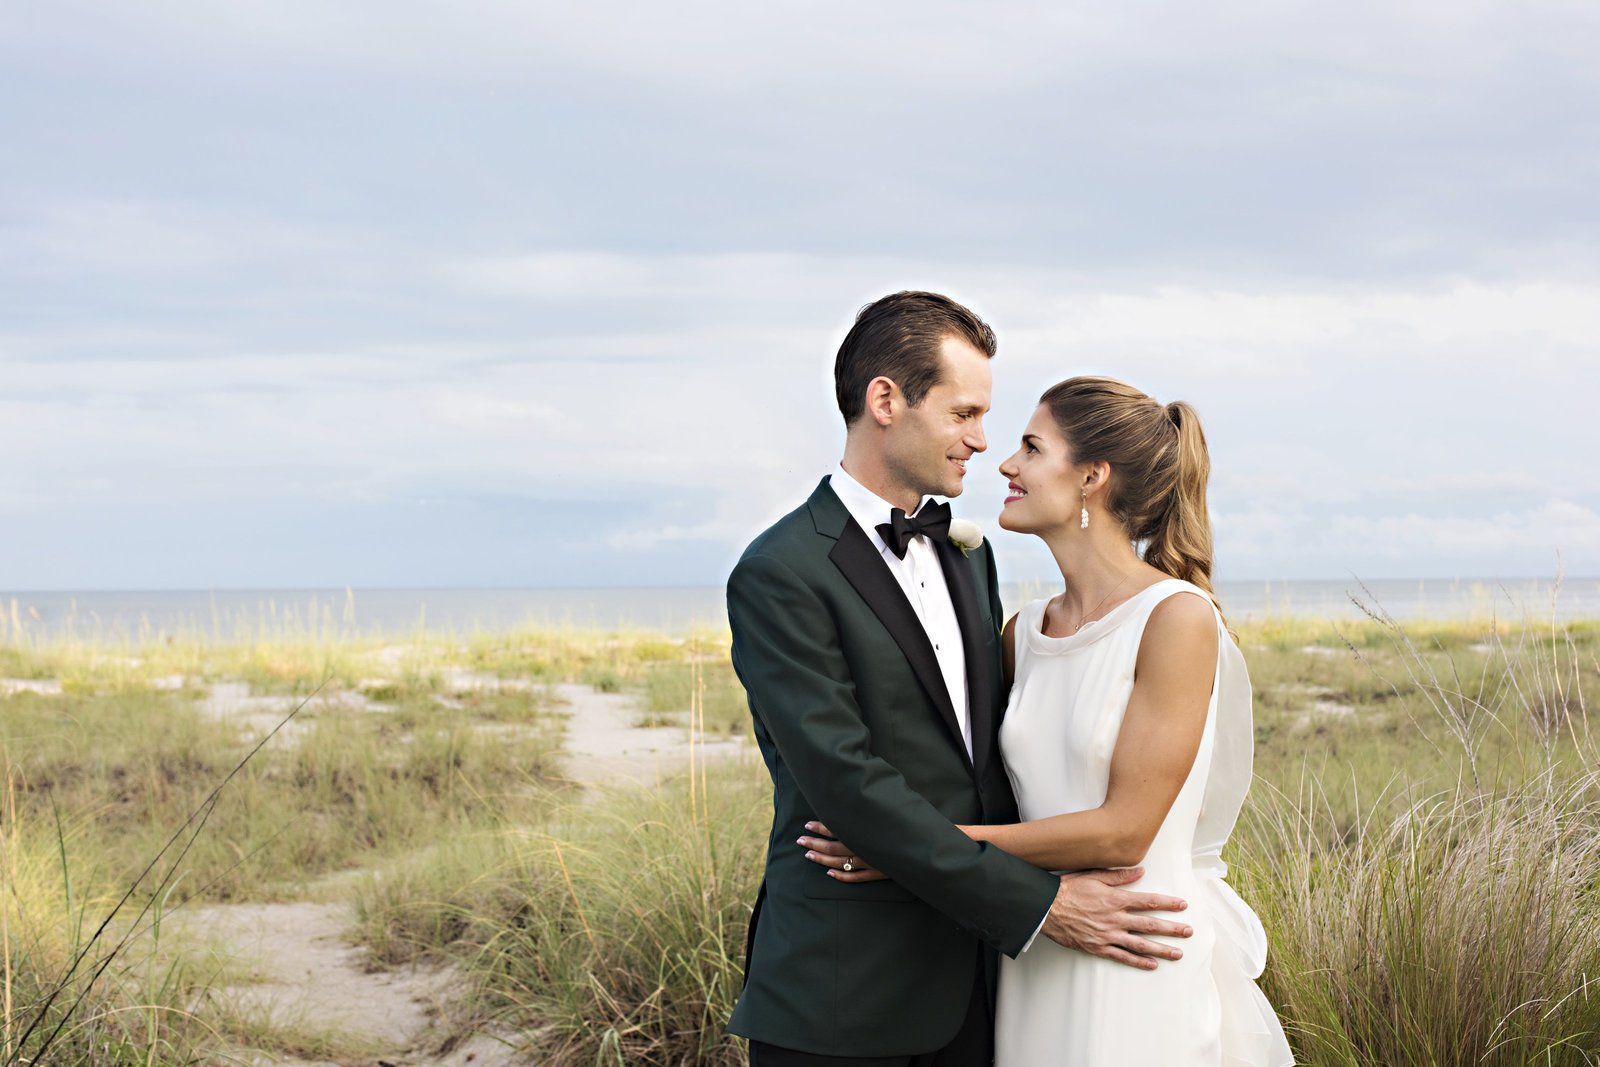 sea island real wedding at oceanroom